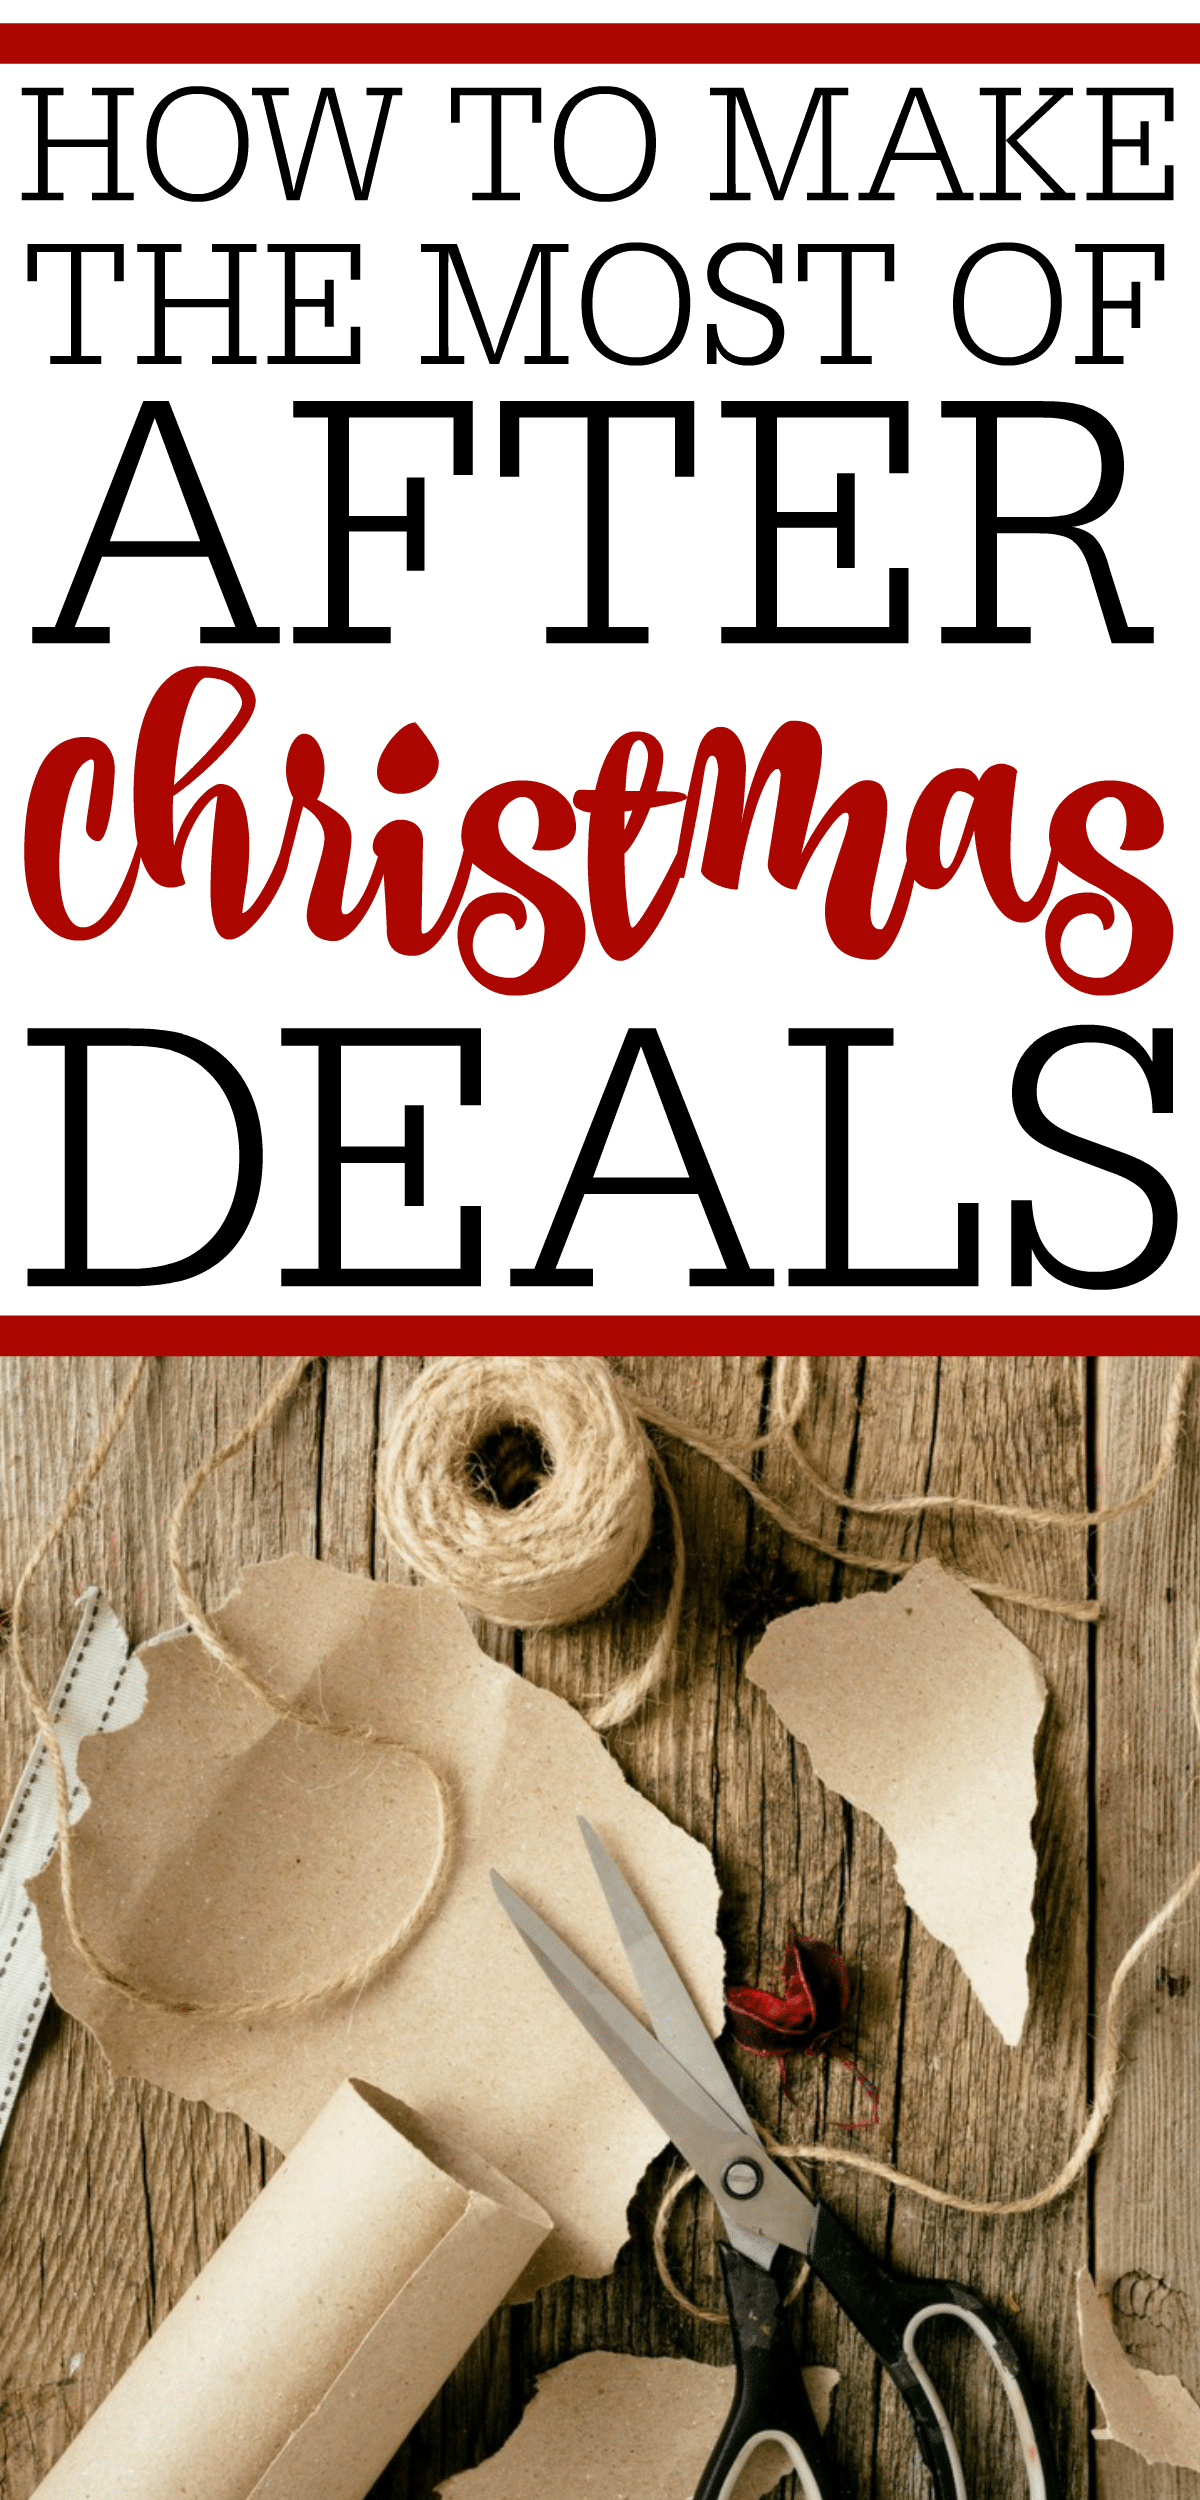 planning on doing some after the holidays shopping see how to make the most of - Best Deals After Christmas